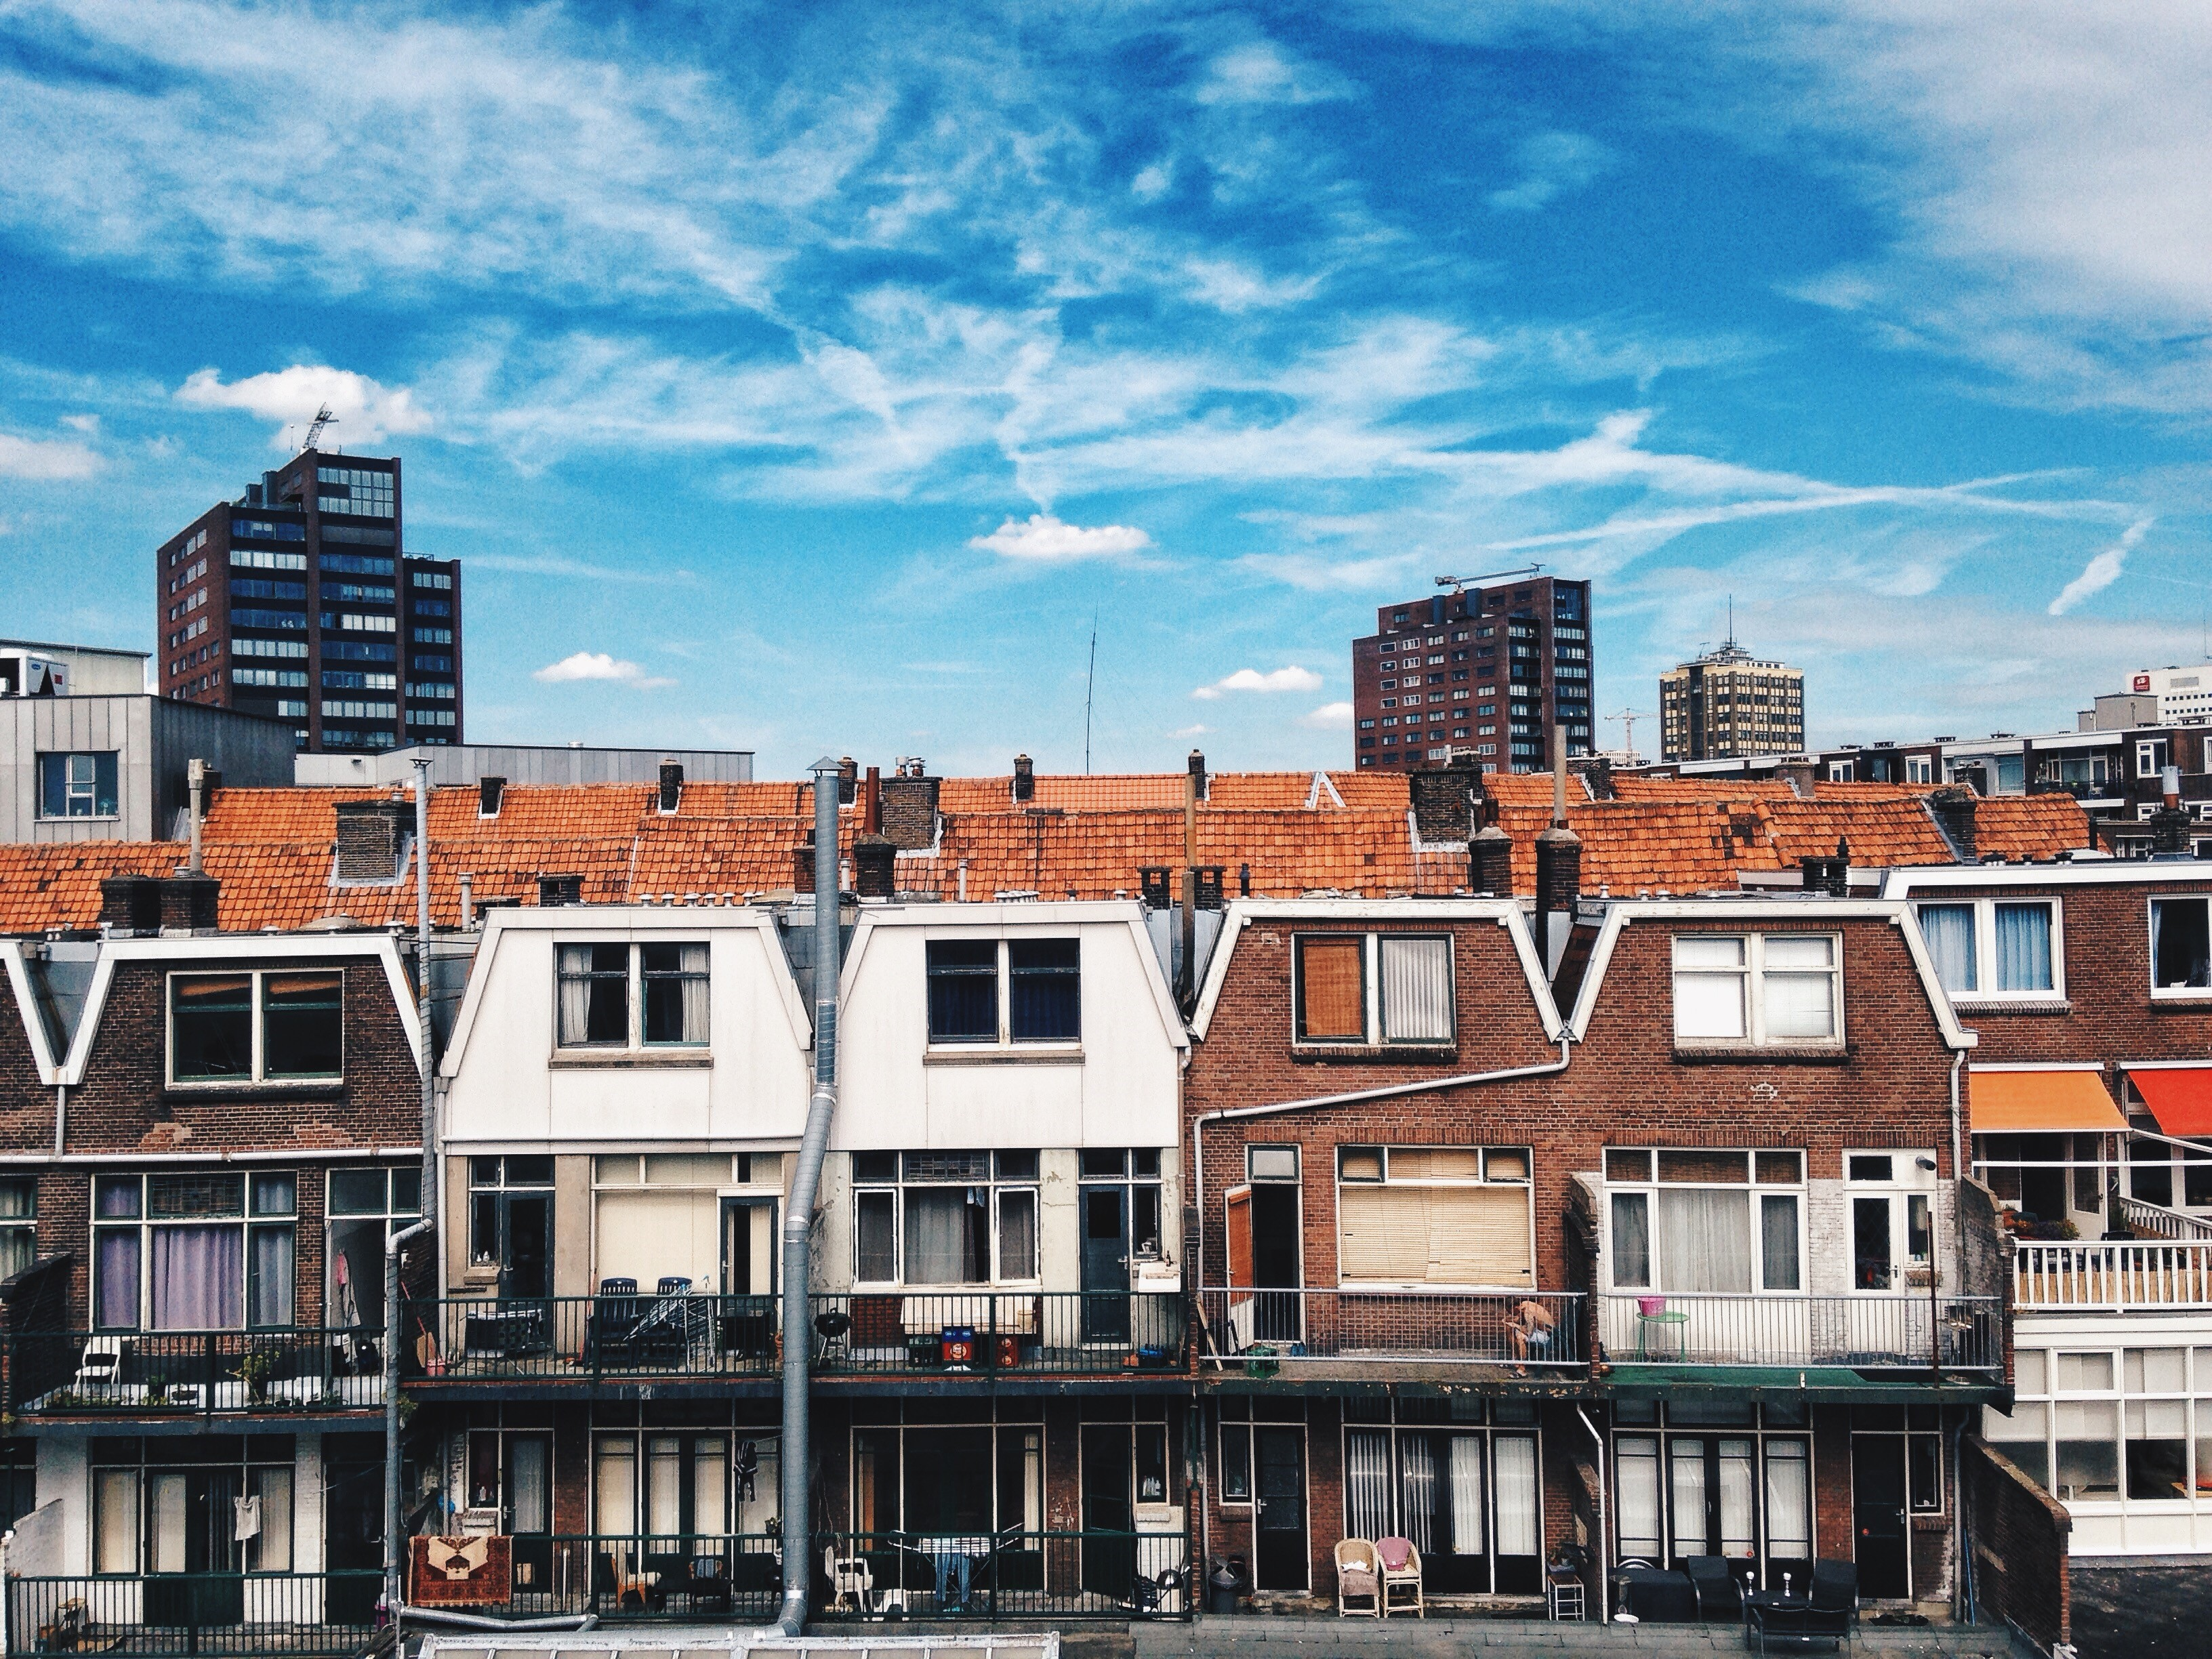 View from Anna's window in Rotterdam